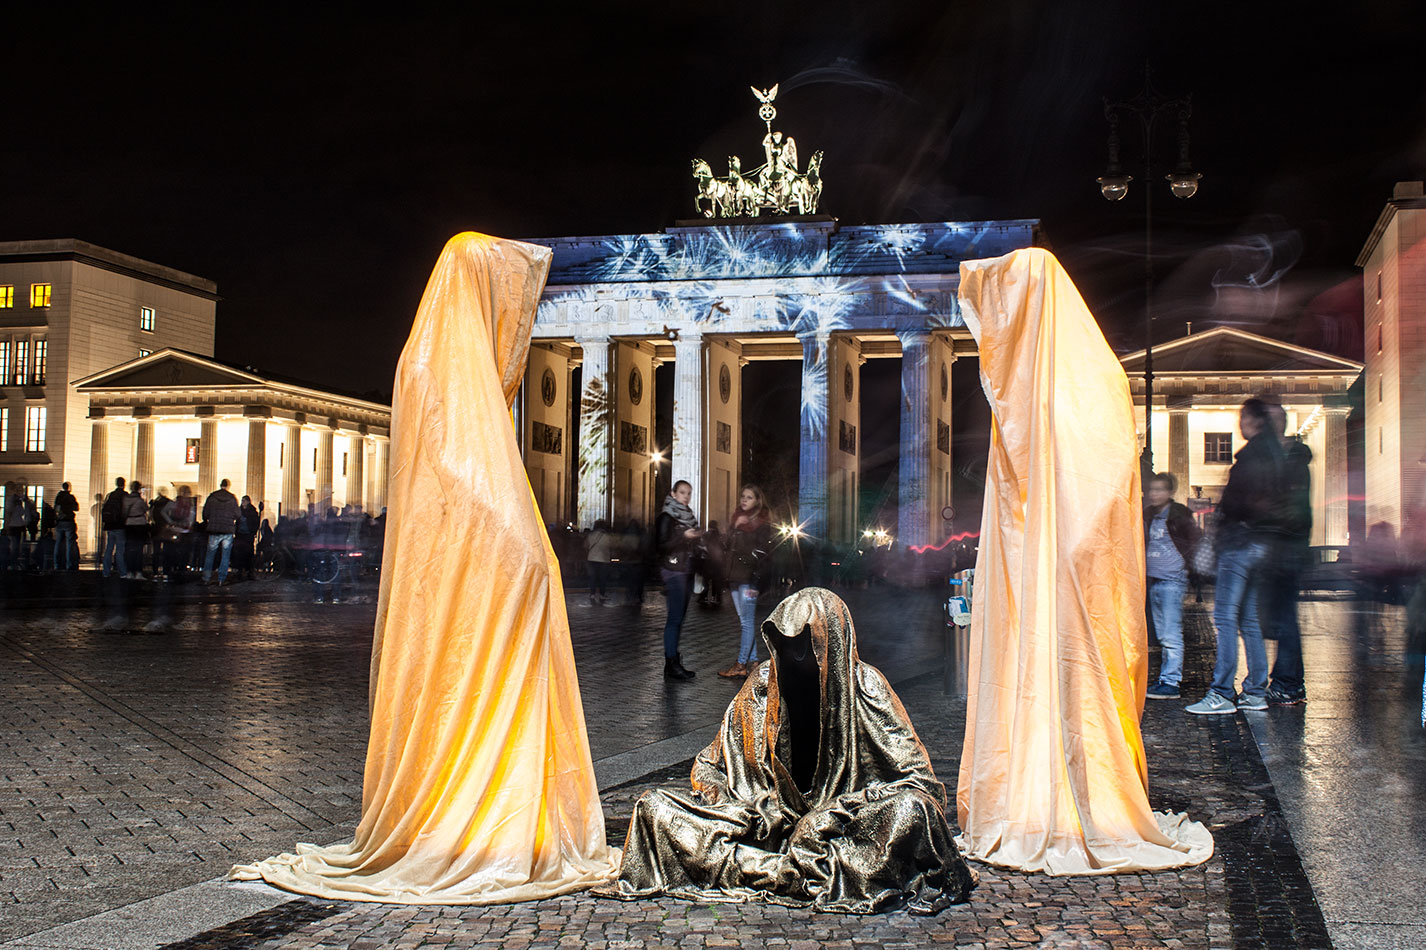 festival-of-lights-berlin-brandenburg-gate-light-art-show-exhibition-lumina-guardians-of-time-manfred-kili-kielnhofer-contemporary-arts-design-sculpture-3287